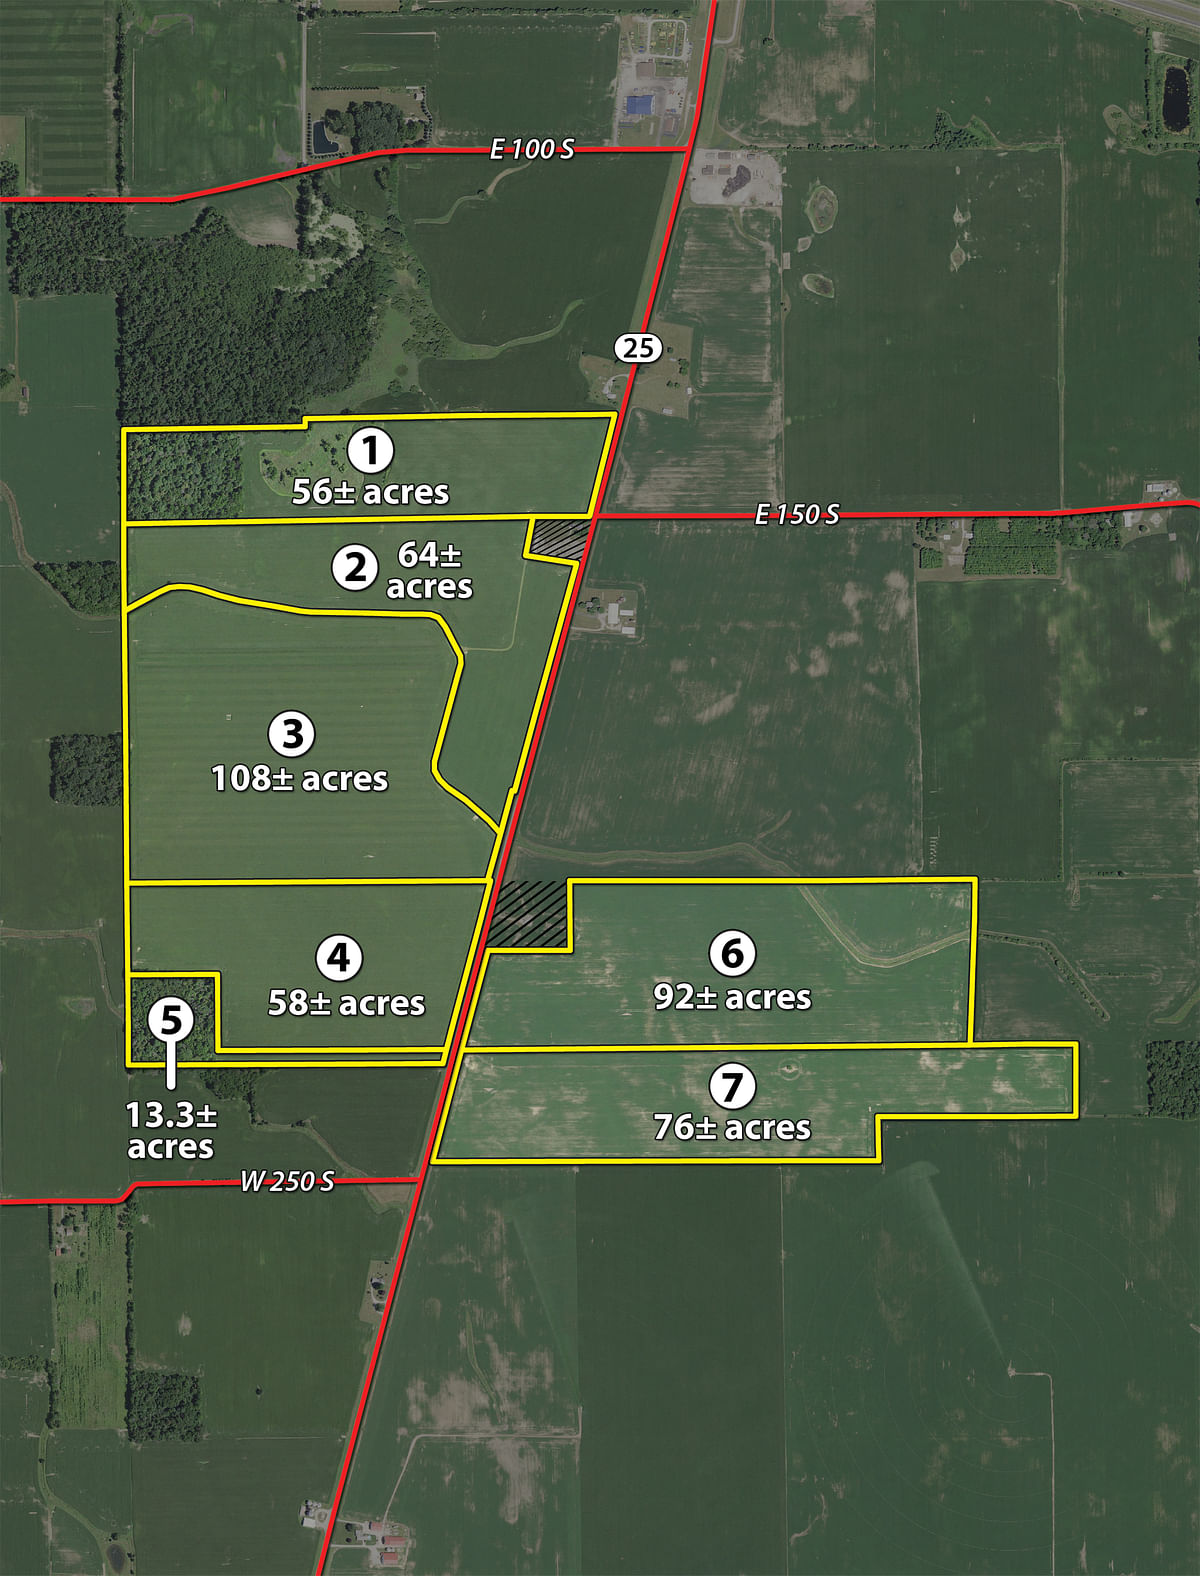 FARMLAND AUCTION - LAND AUCTION - 541.3+/- ACRES IN 9 TRACTS IN ...